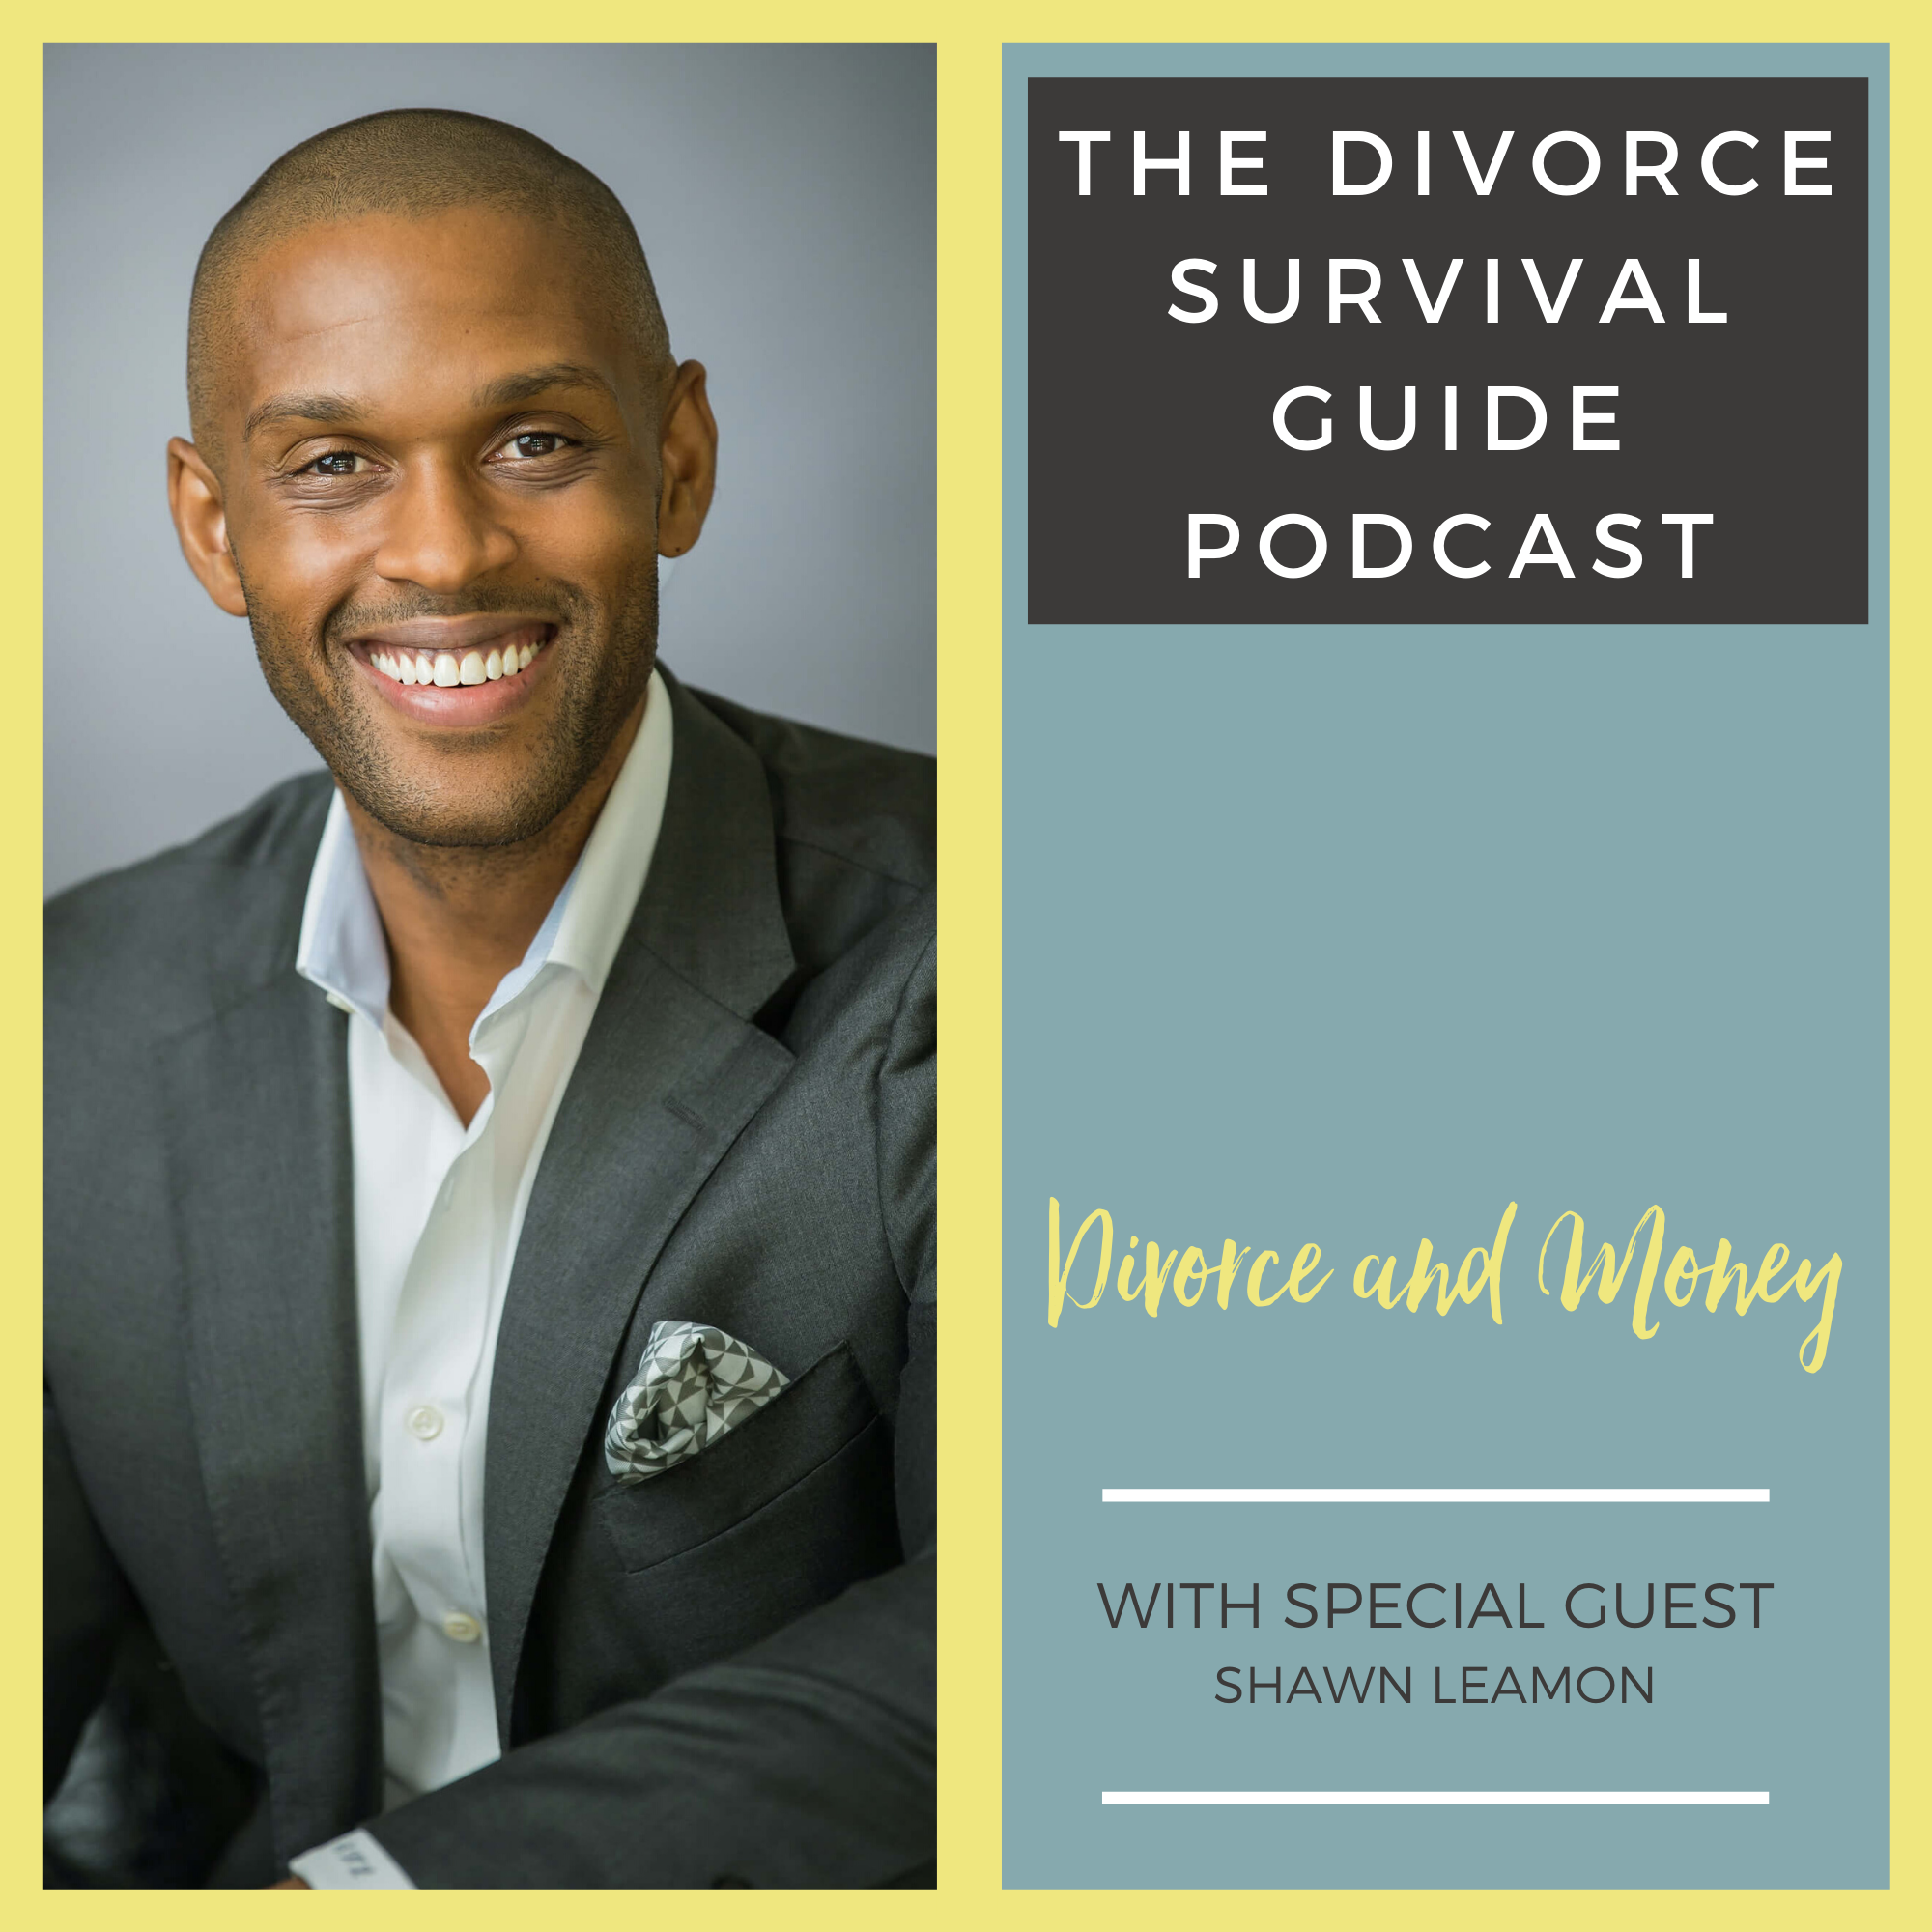 The Divorce Survival Guide Podcast - Divorce and Your Money with Shawn Leamon